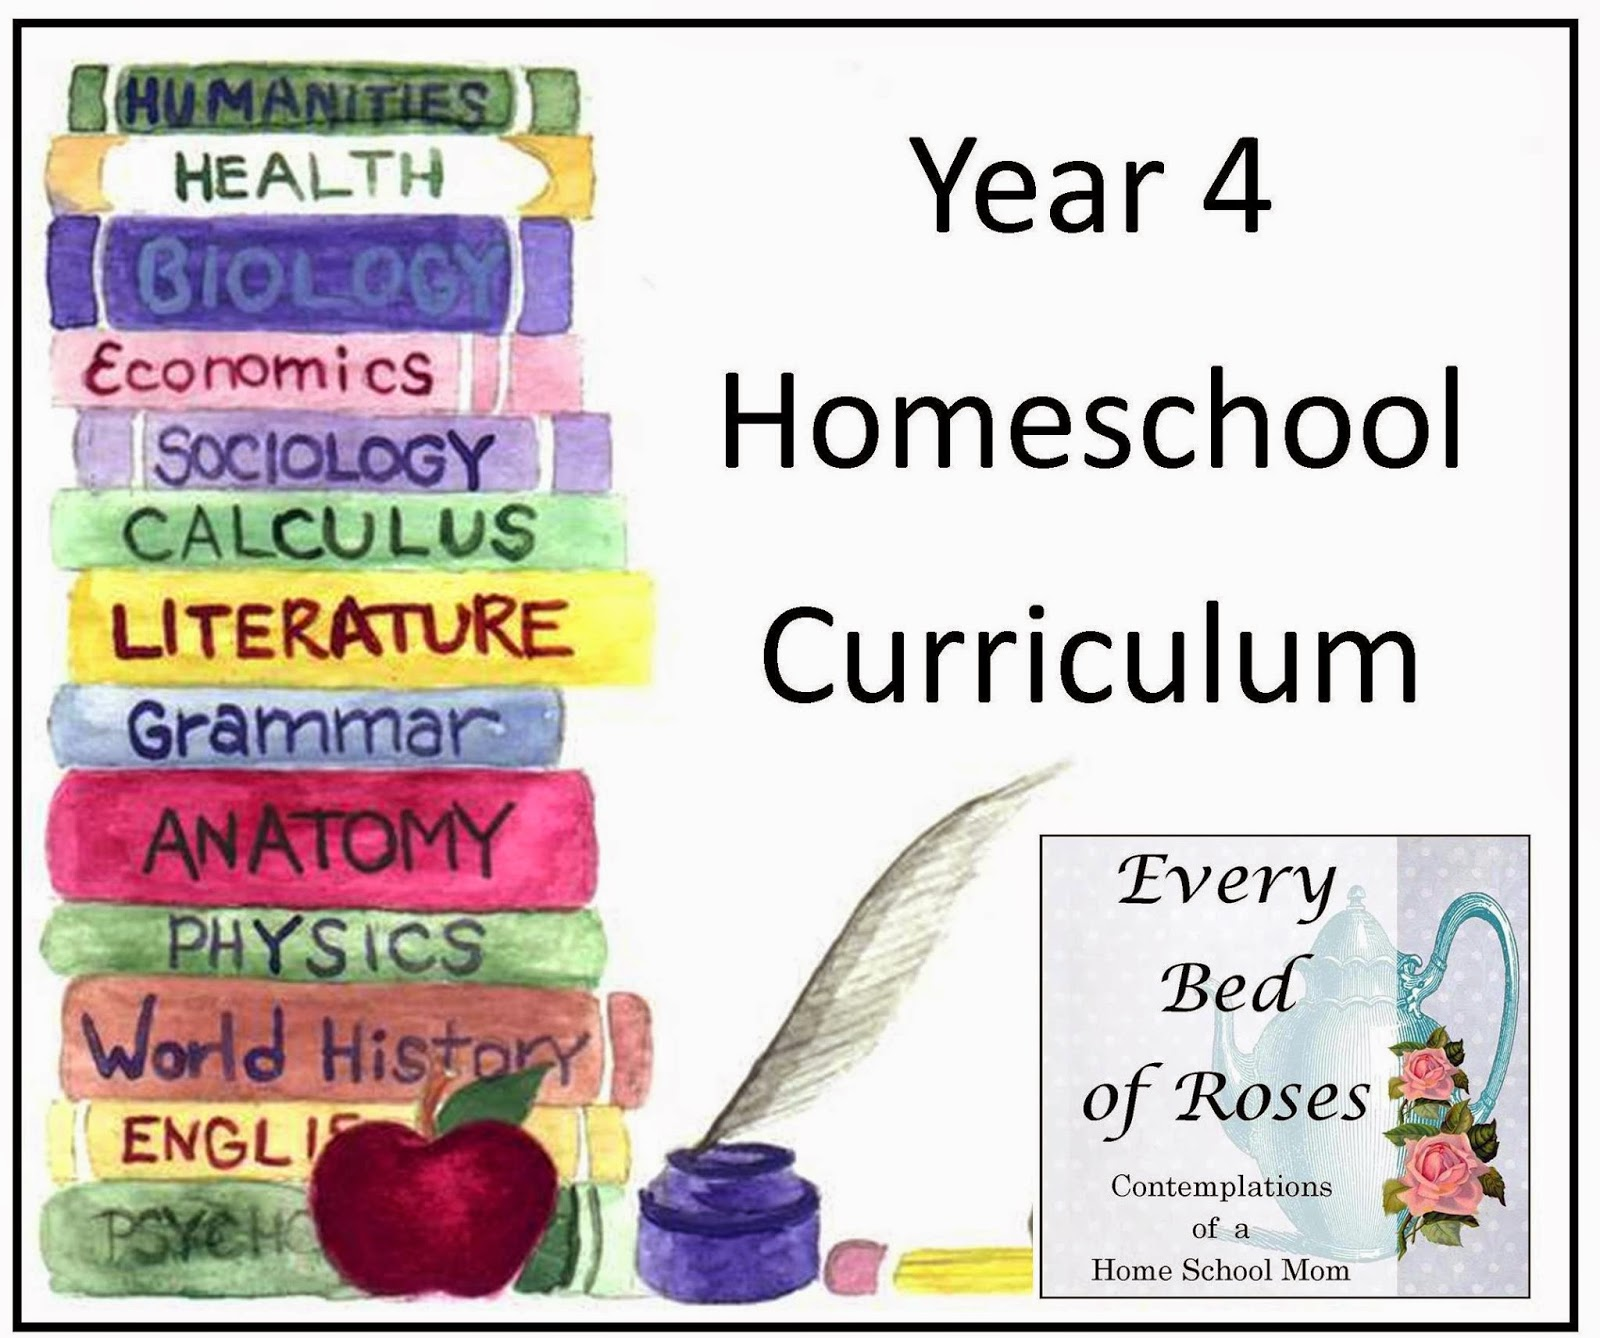 Every Bed of Roses: Year 4 Curriculum {NBTS}